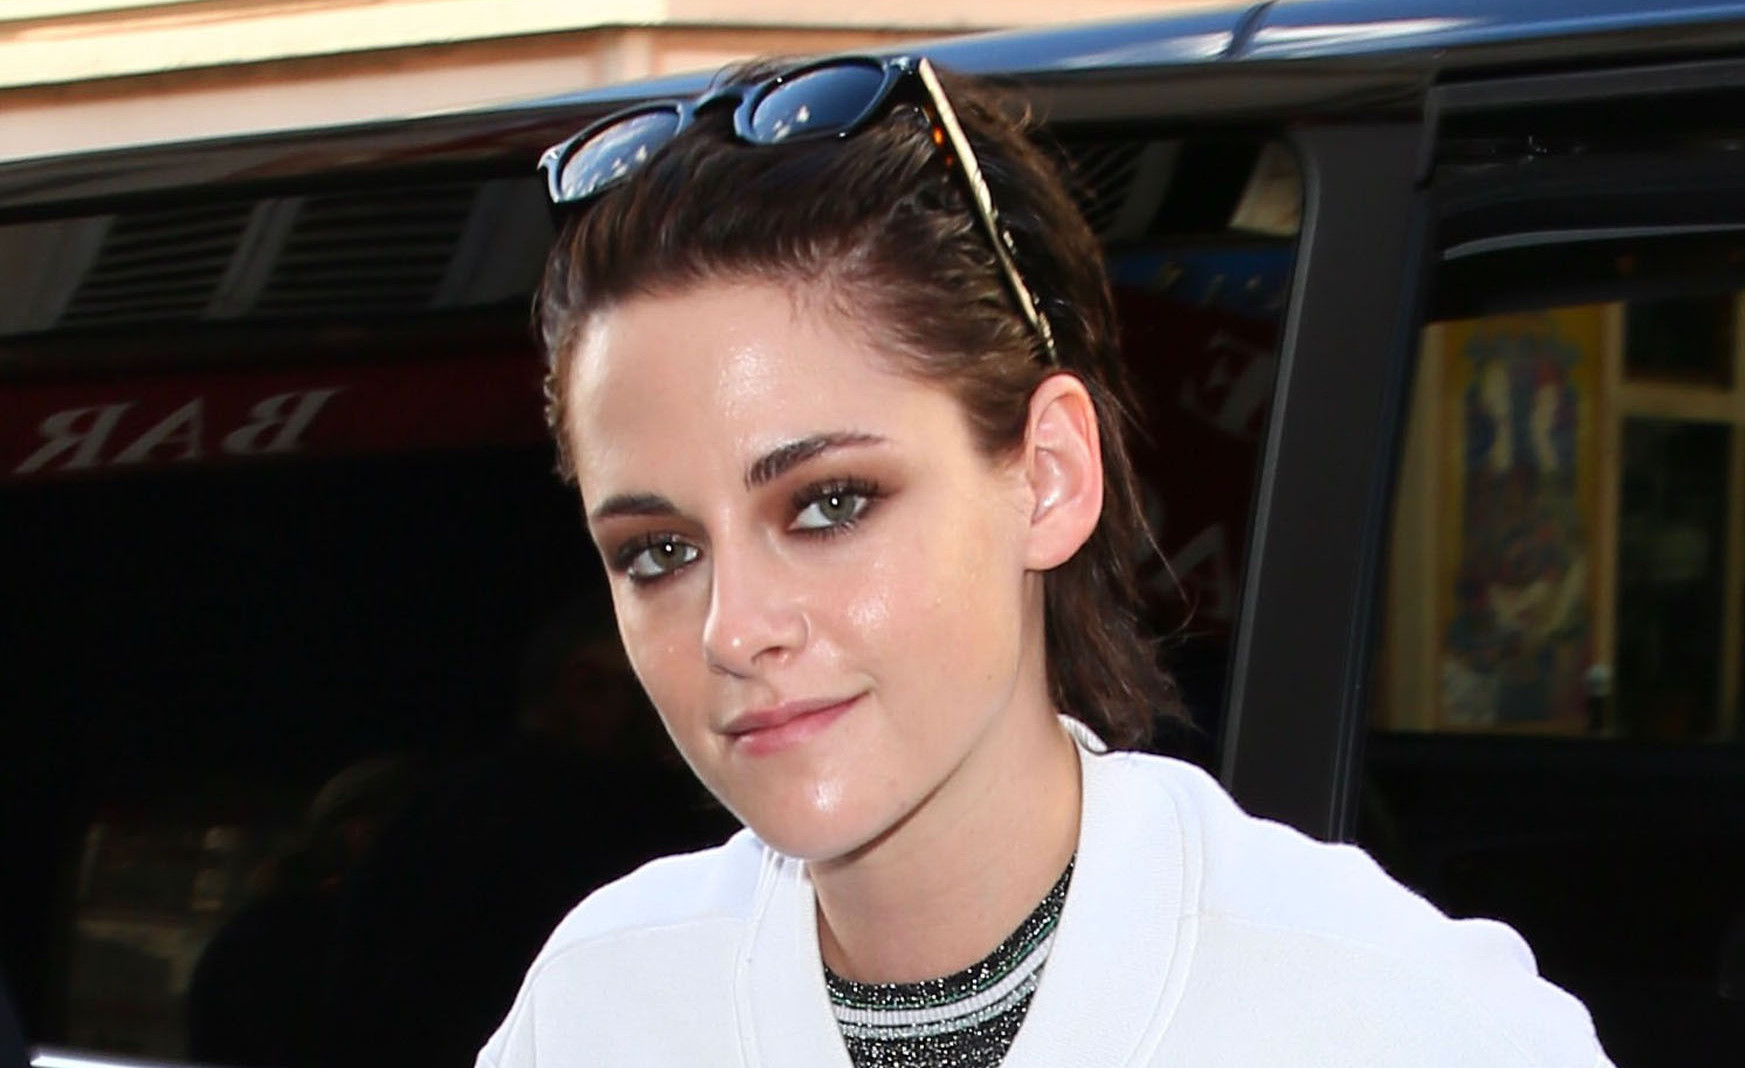 Donald Trump Was Obsessed With Me, Says Kristen Stewart